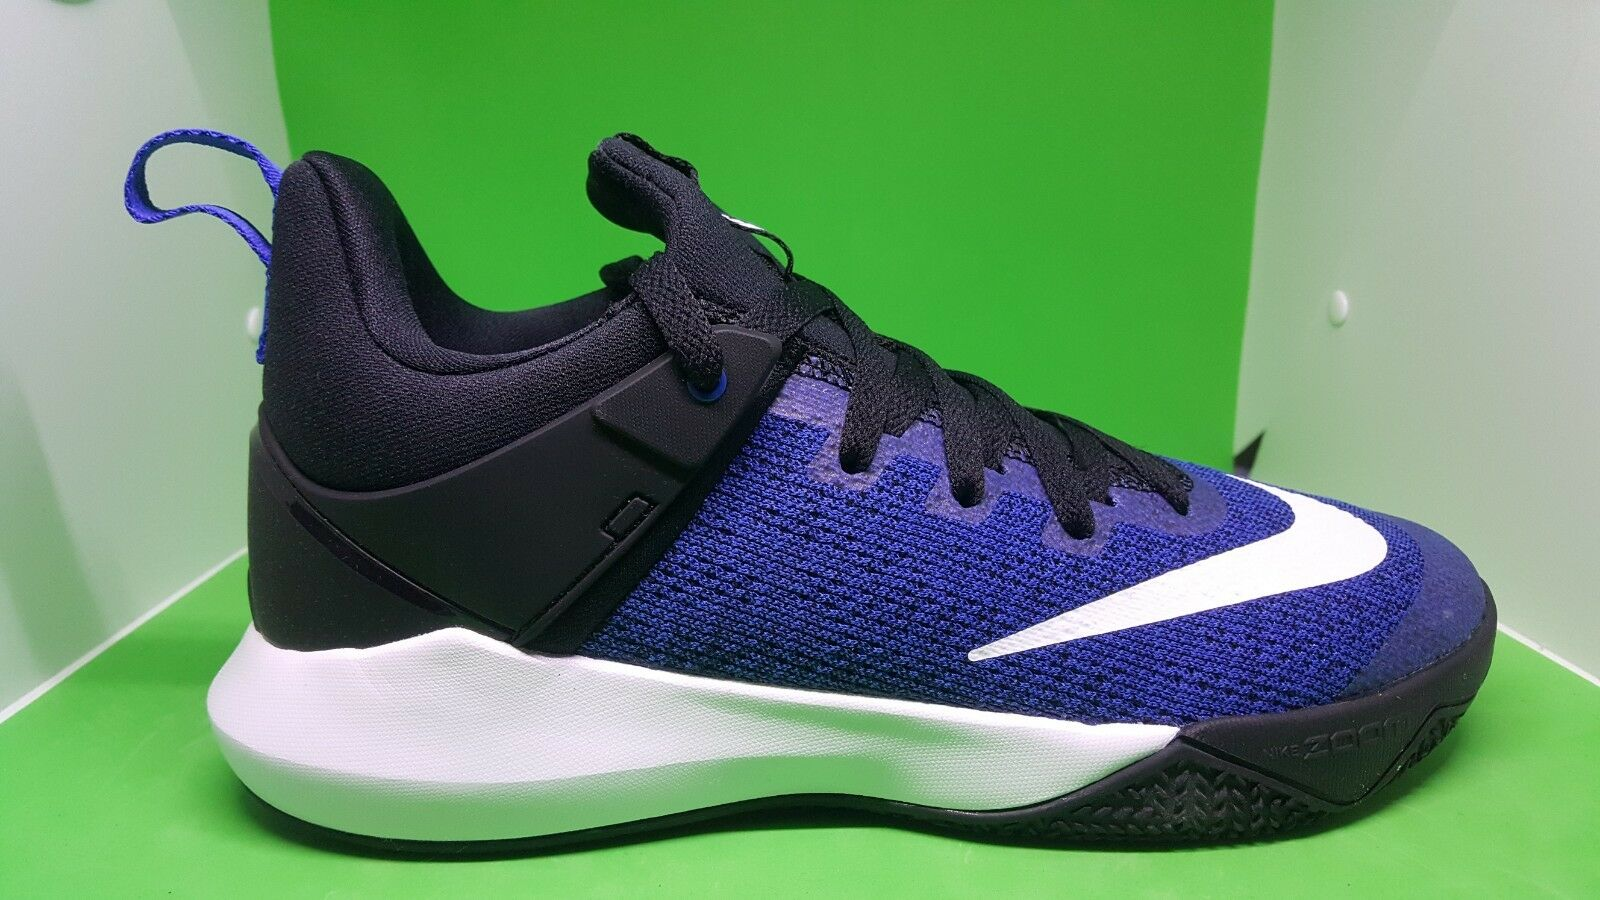 MEN'S NIKE ZOOM SHIFT SHOES SIZES 8 and 9